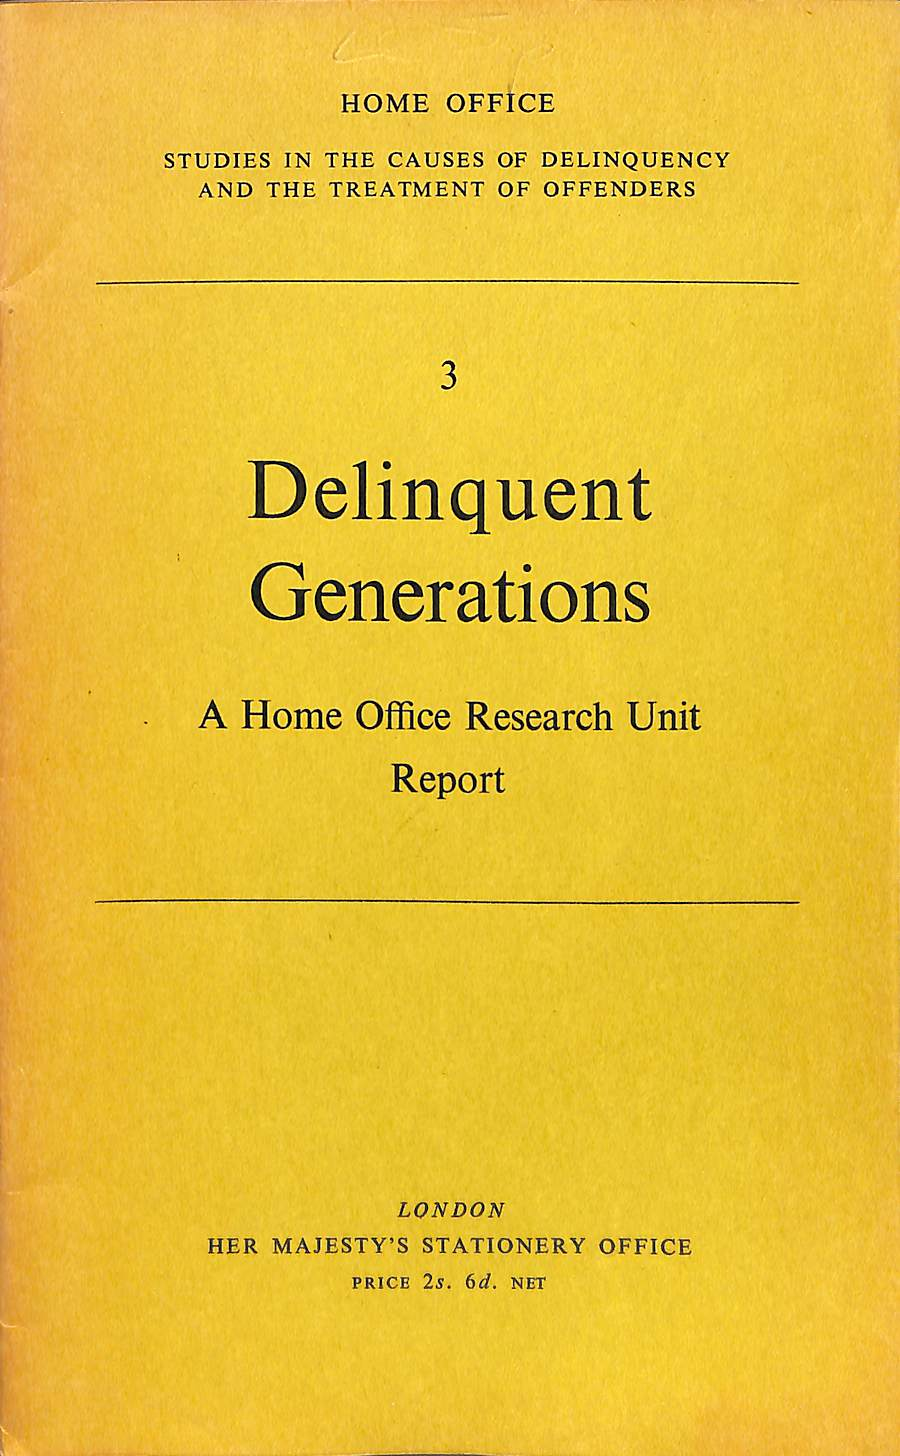 Image for Delinquent Generations